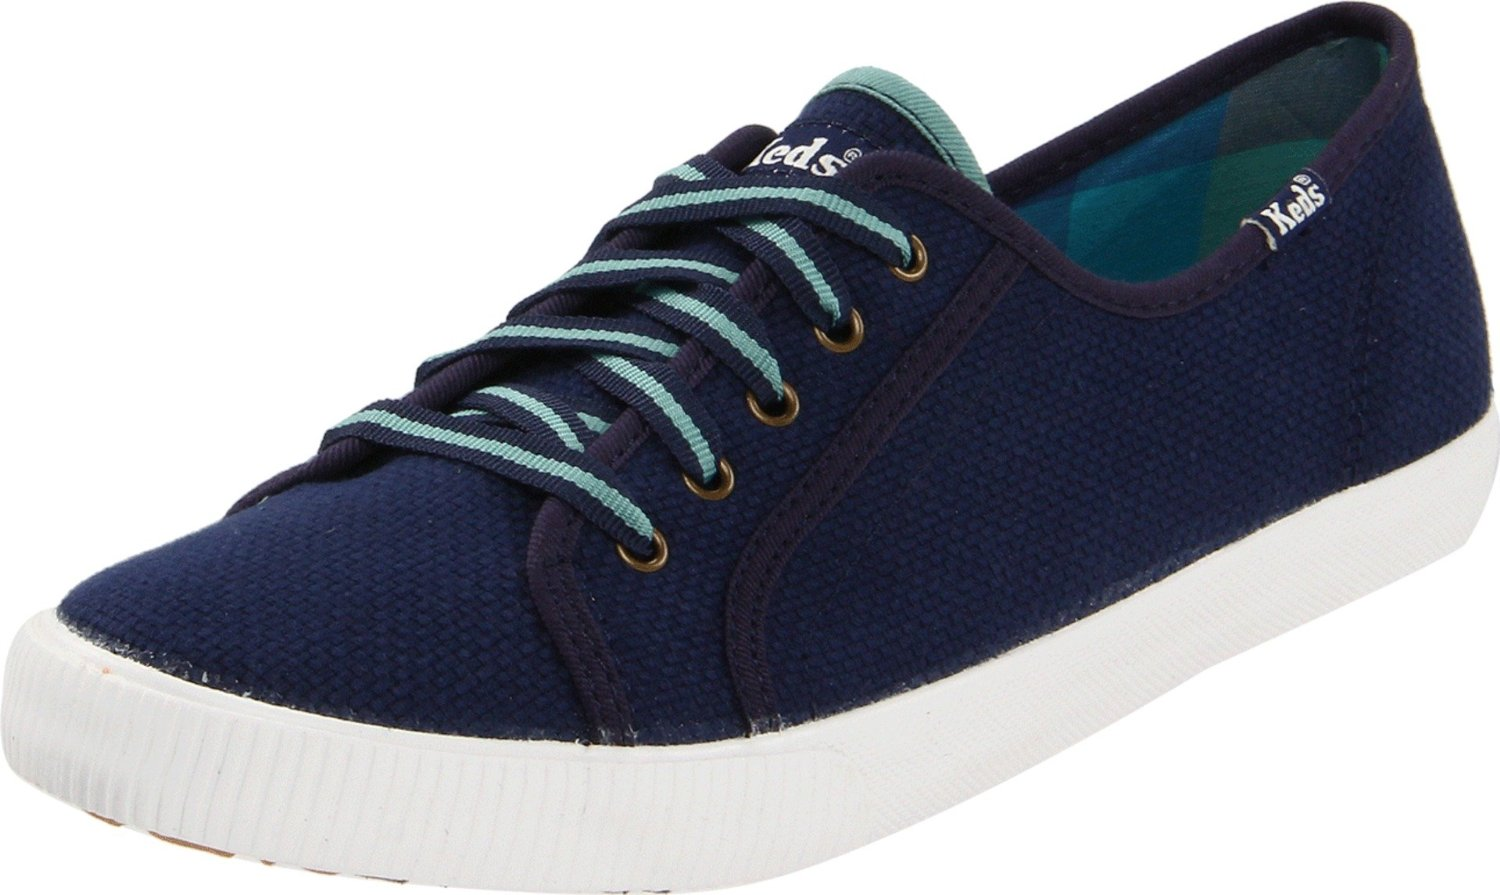 Keds Celeb Canvas Lace Up Fashion Sneaker In Blue (navy) | Lyst